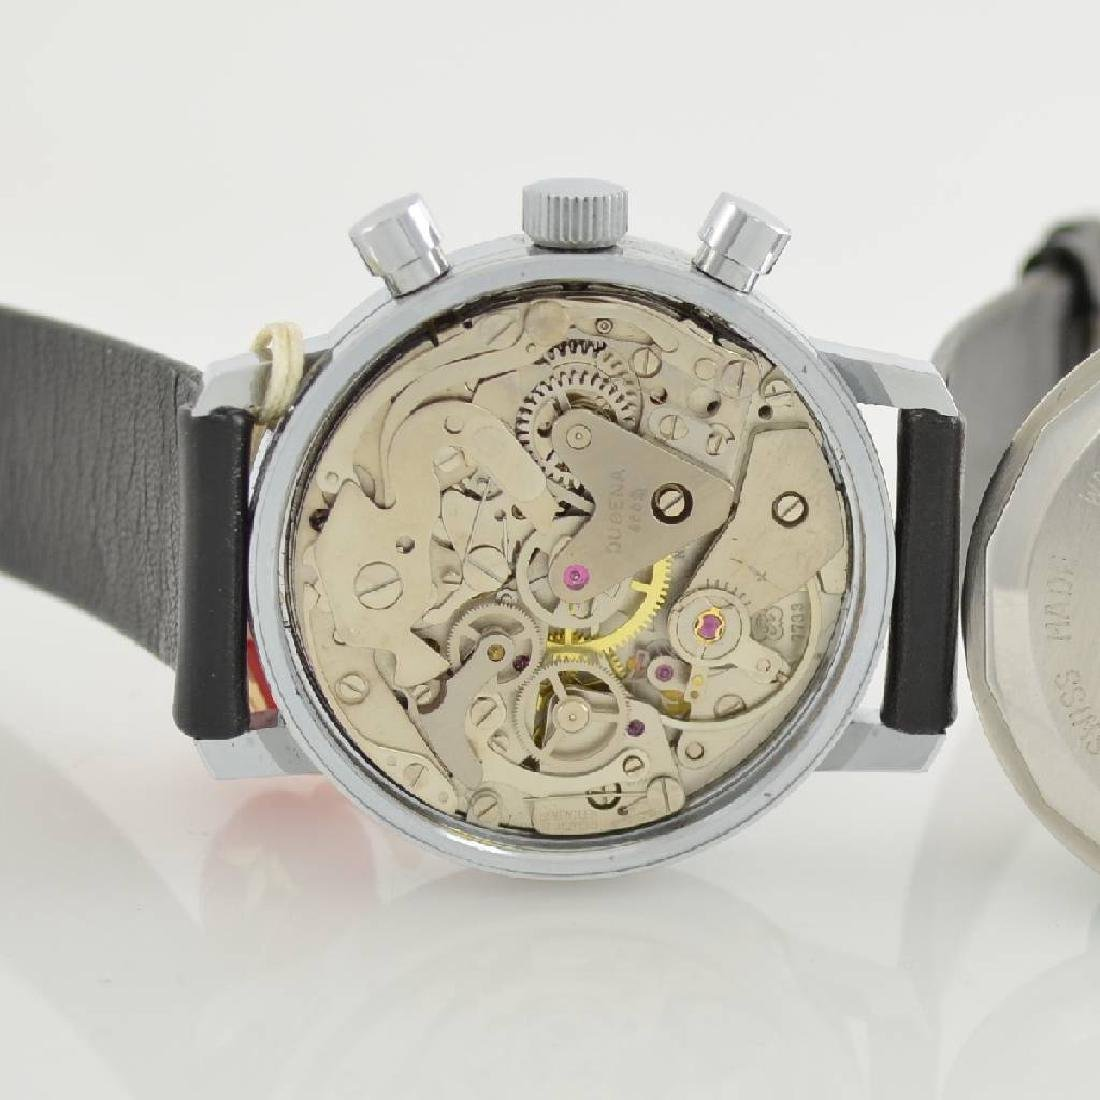 DUGENA unworn gents wristwatch with chronograph - 8